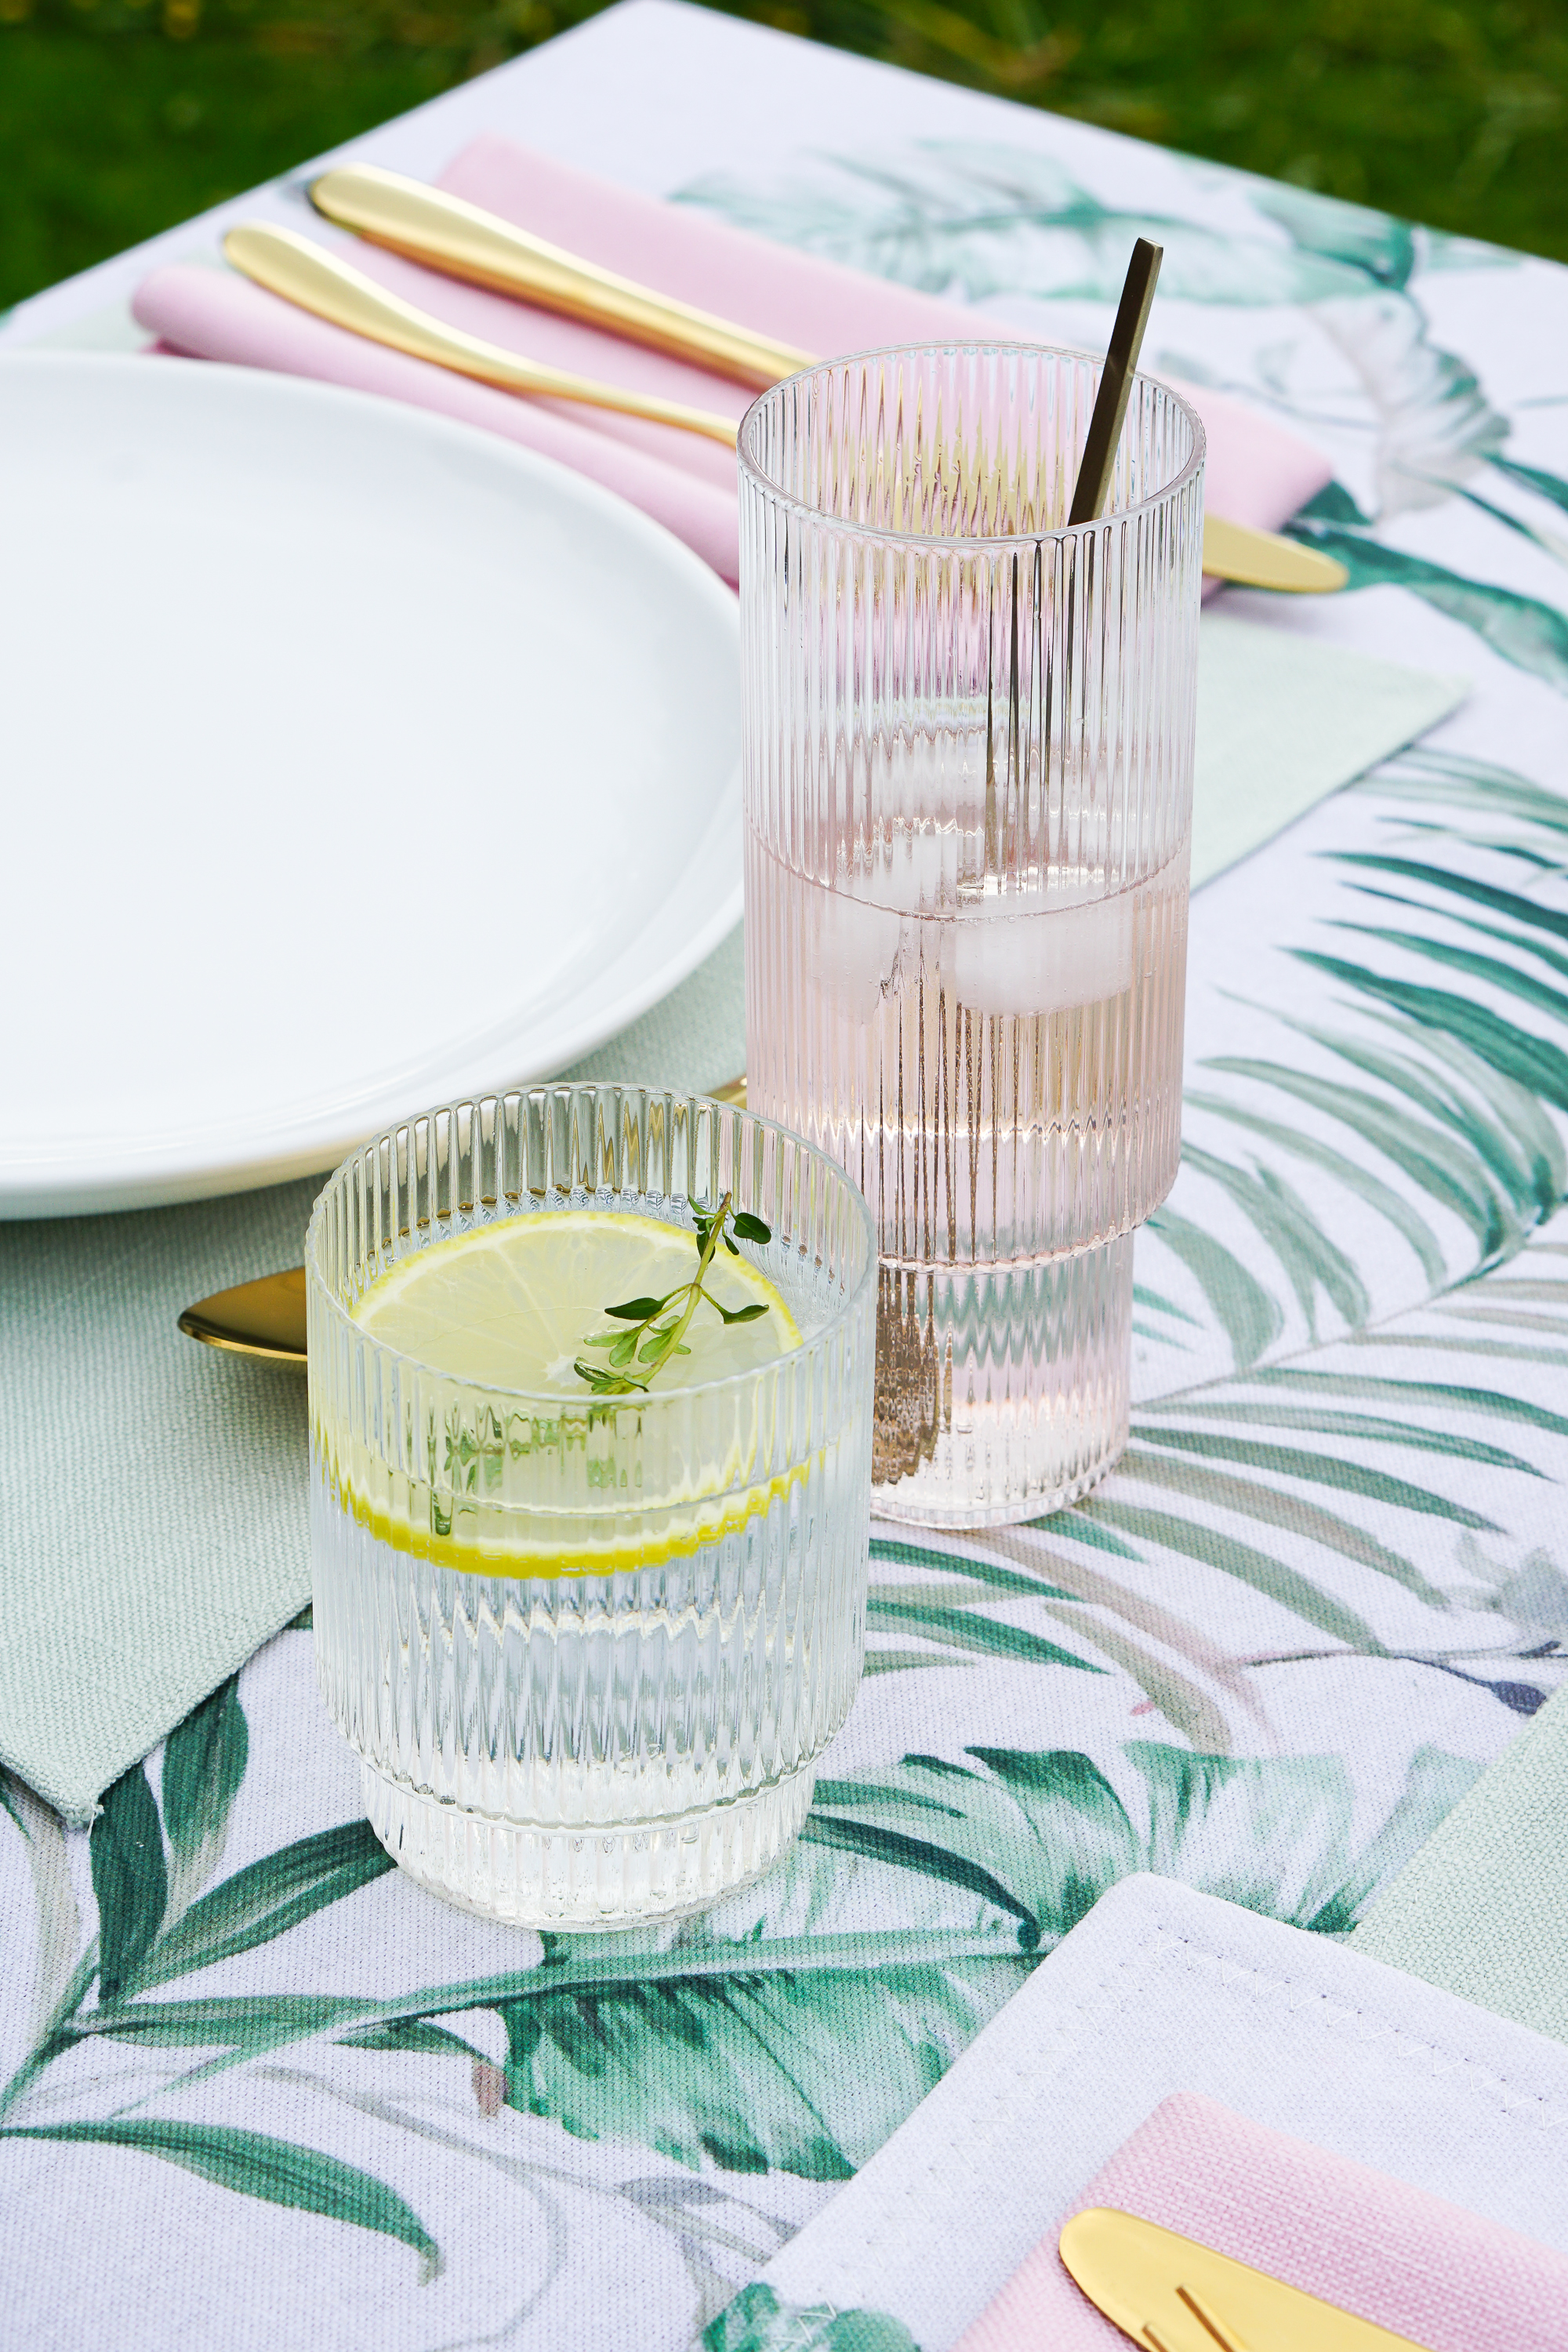 Styling a summer table and a simple supper suggestion